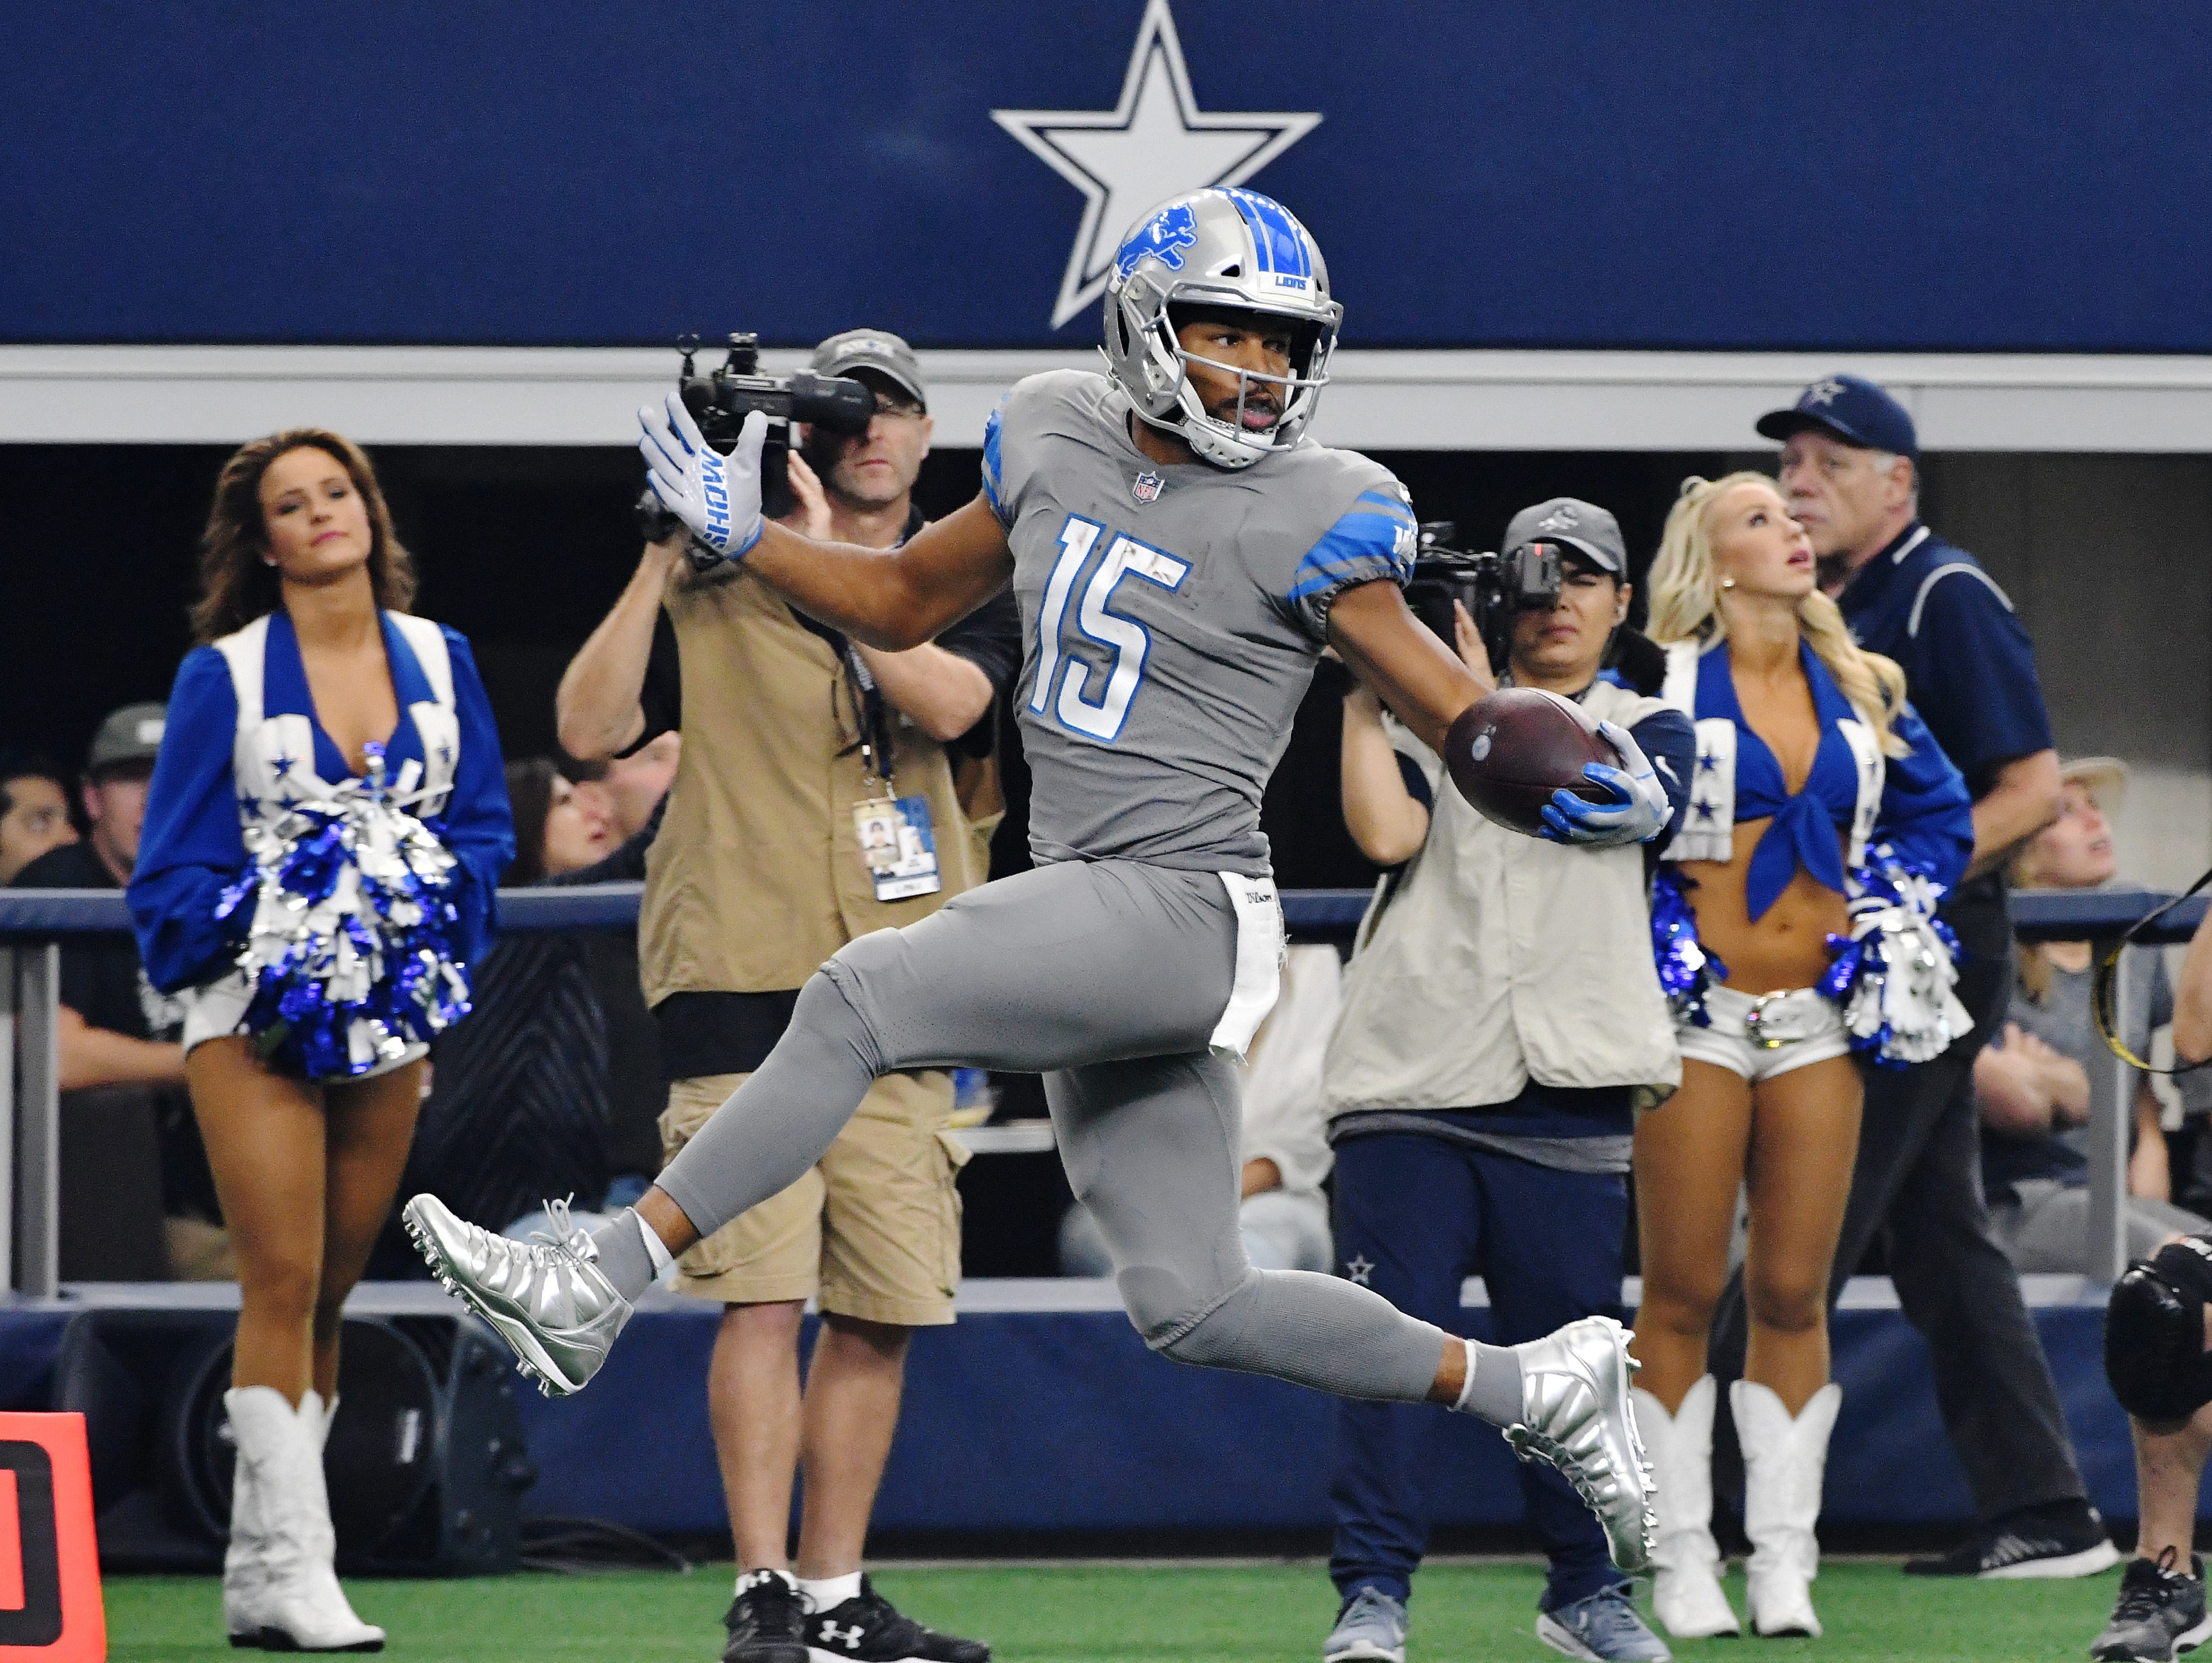 Lions wide receiver Golden Tate tip toes down the sidelines into the end zone for at touchdown against the Dallas Cowboys at AT&T Stadium in Arlington, Texas on September 30, 2018. The Lions lost 26-24.